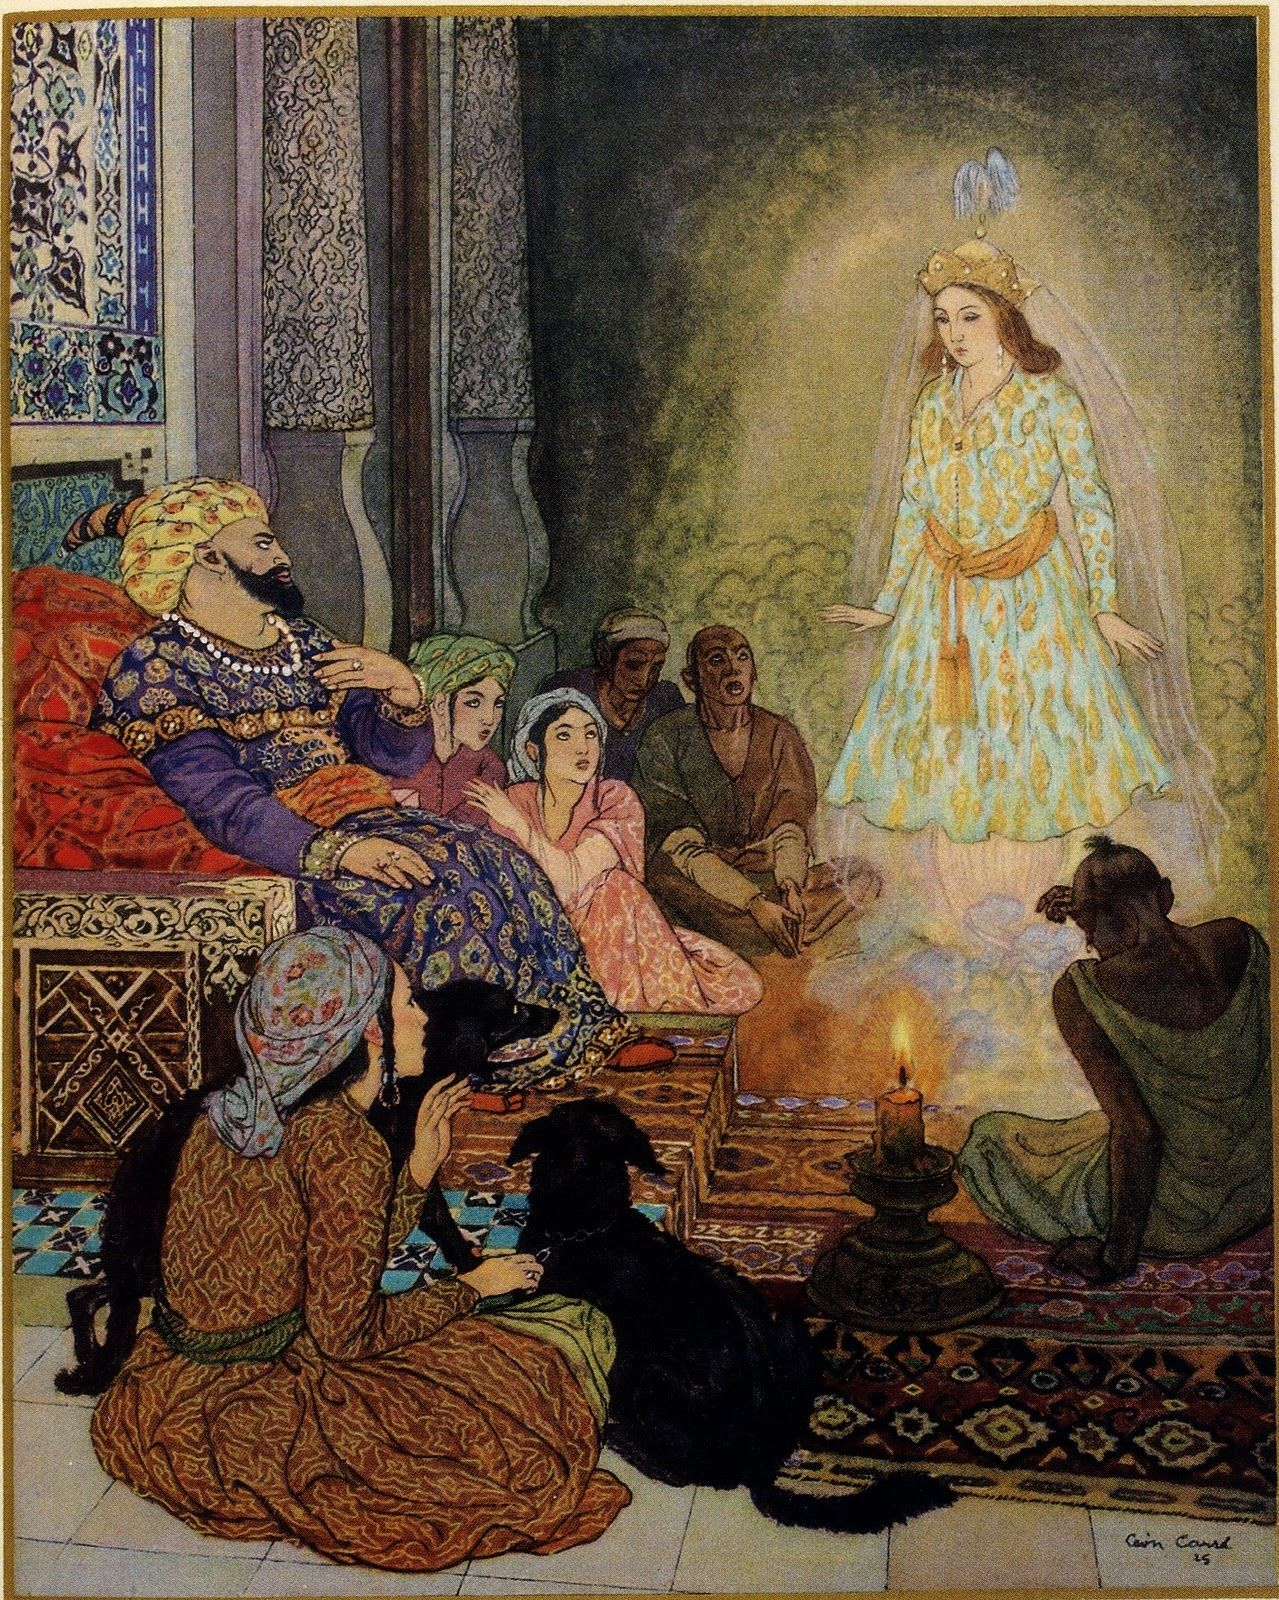 1001 Nights. Léon Georges Jean-Baptiste Carré (1878 - 1942 ) was an Orientalist painter and French illustrator. He studied in Paris with Leon Bonnat and Luc-Olivier Merson. One of 144 color llustrations by Leon Carre.